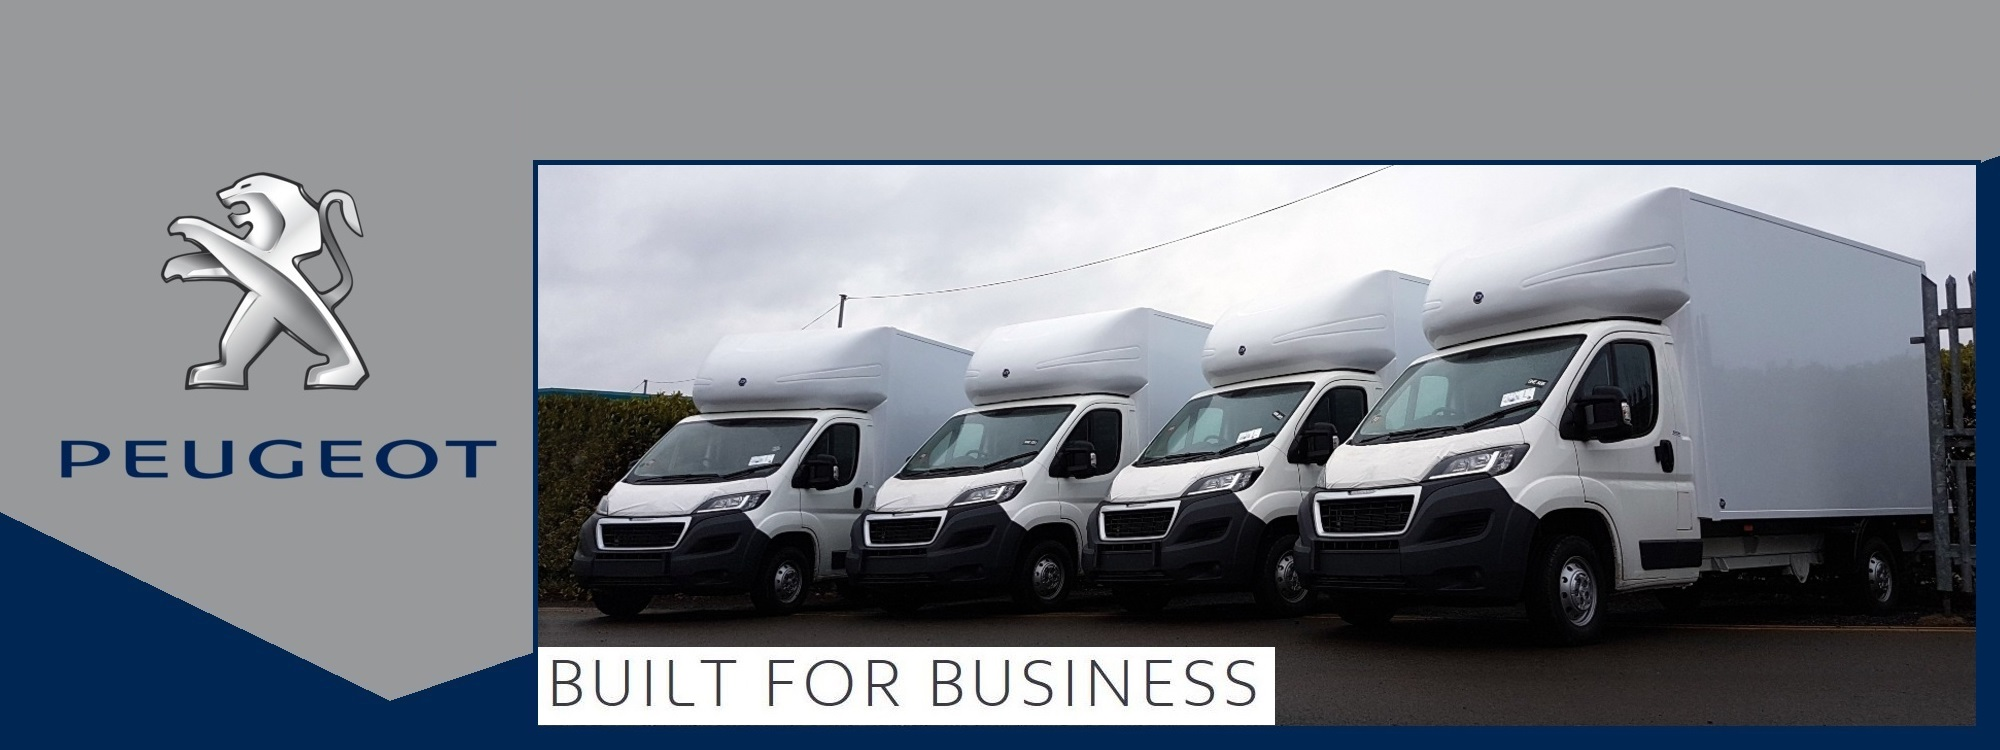 Peugeot – Built for Business